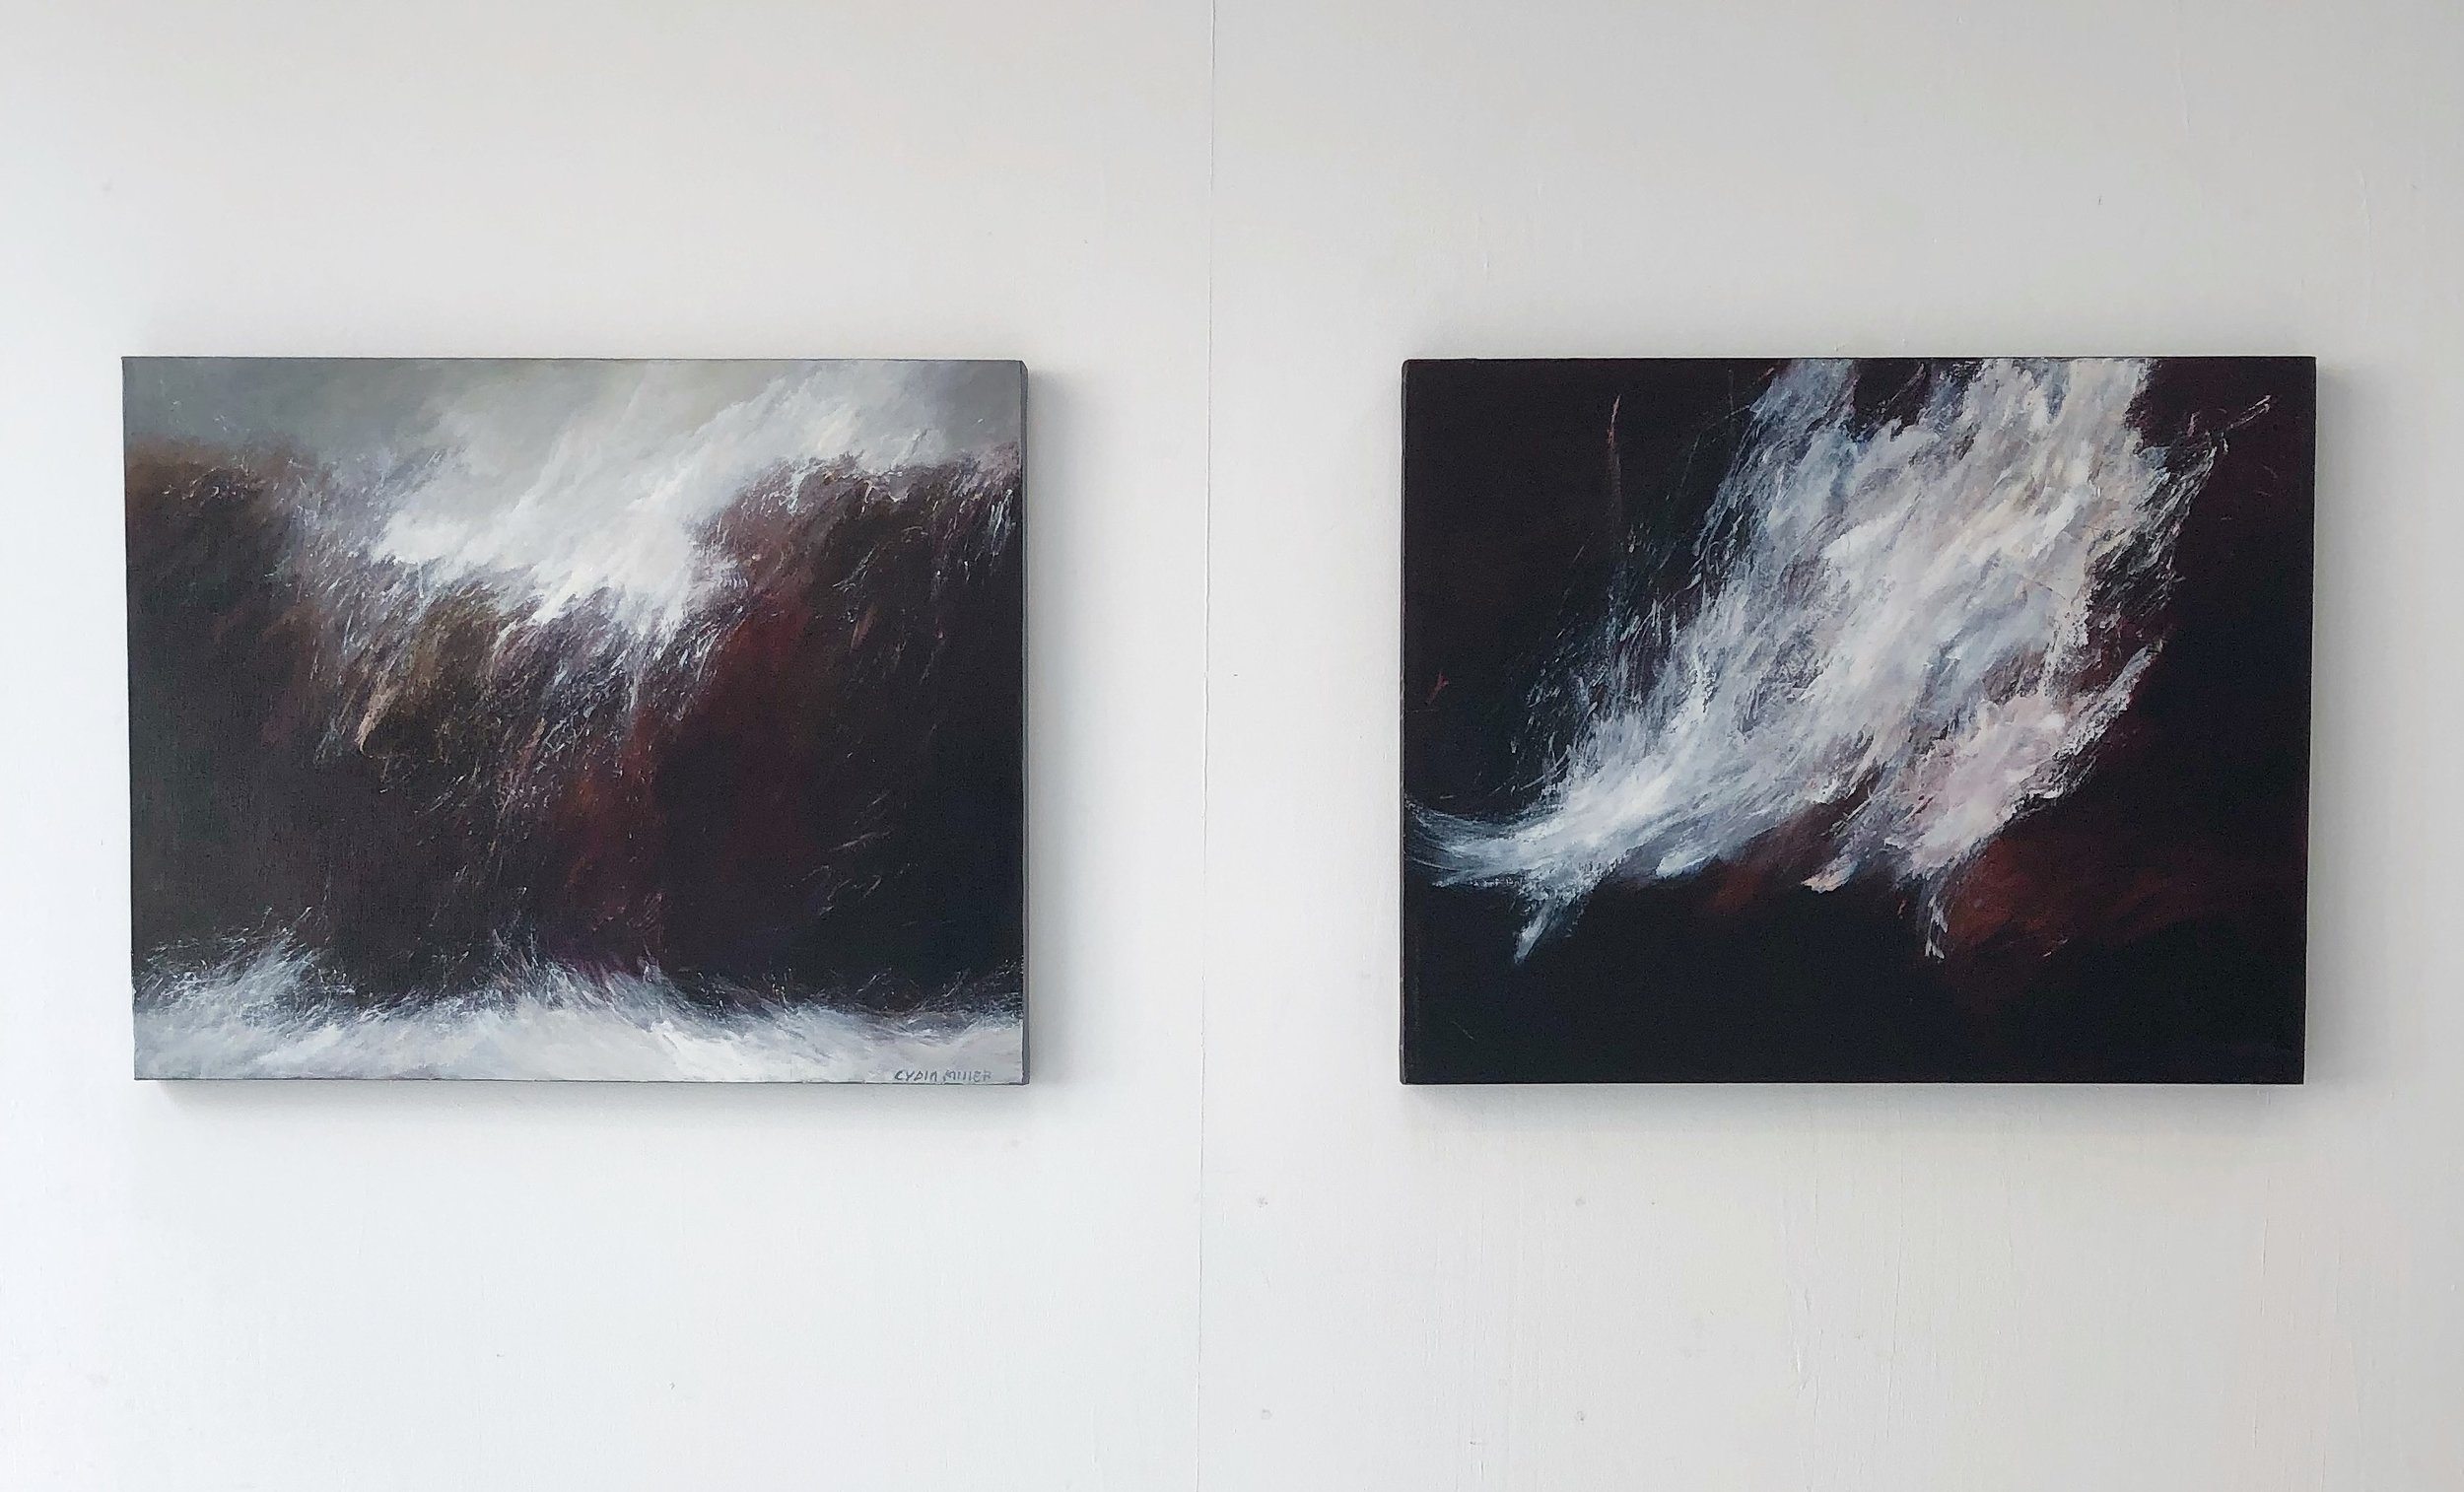 Lydia Miller Stormy oil on canvas 61 x76cm $850.00 Lydia Miller Sea spray oil on canvas 61 x76cm $850.00